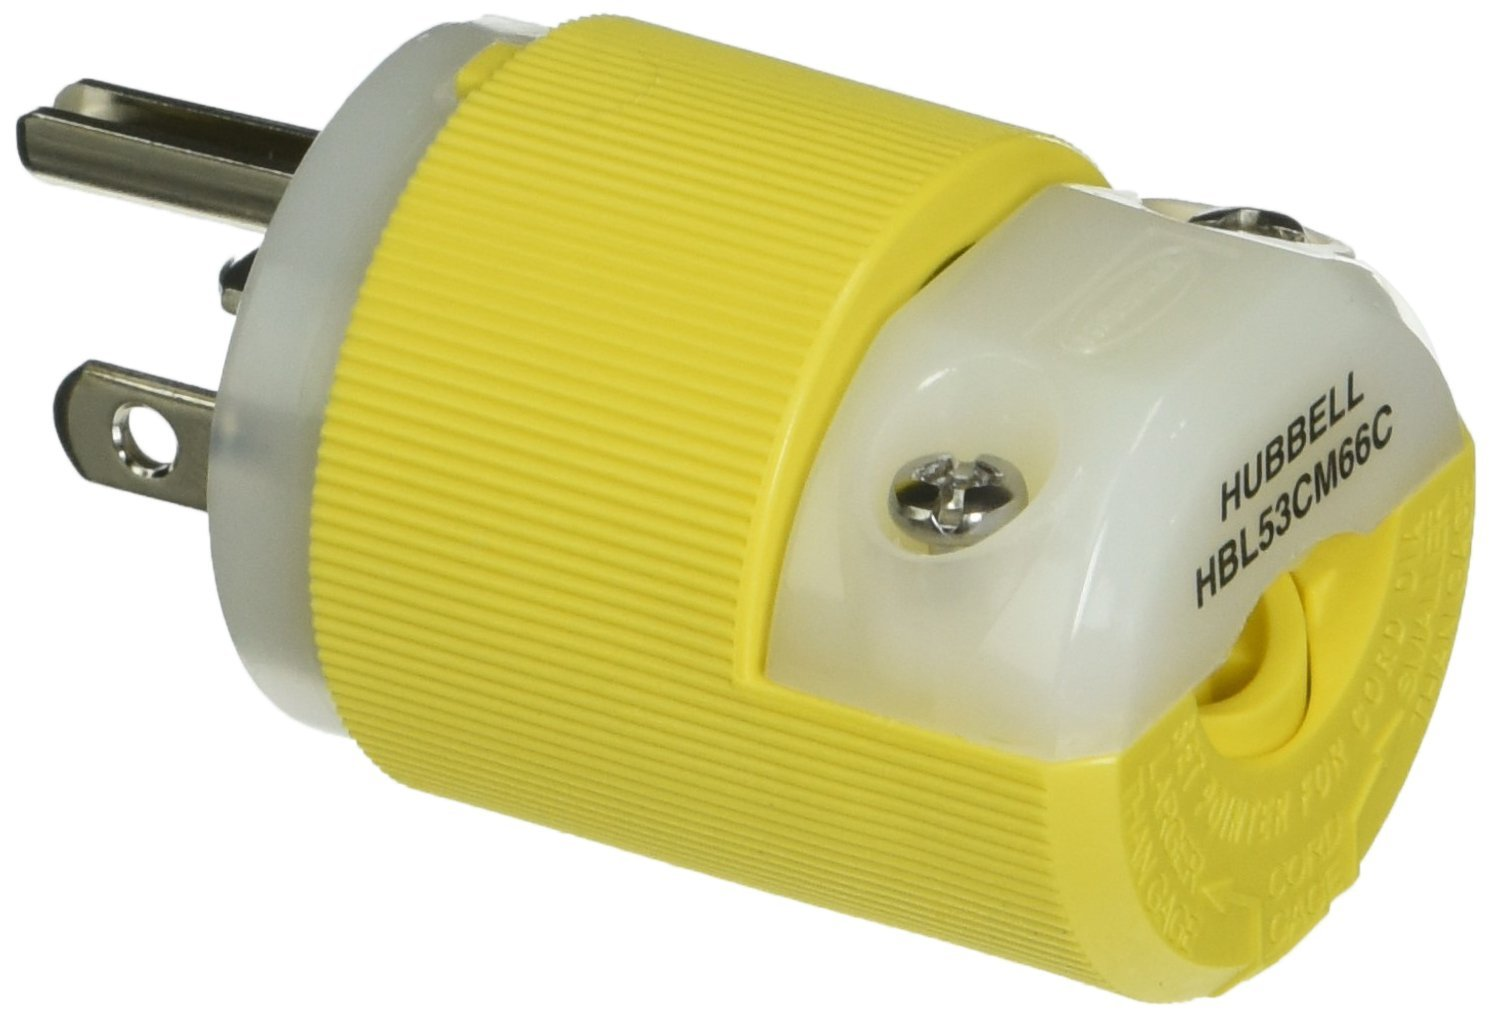 Hubbell Wiring Systems HBL53CM66C Insulgrip Plug with Straight Blade 20A 125V 3 Wire Grounding Yellow 89374 2-Pole